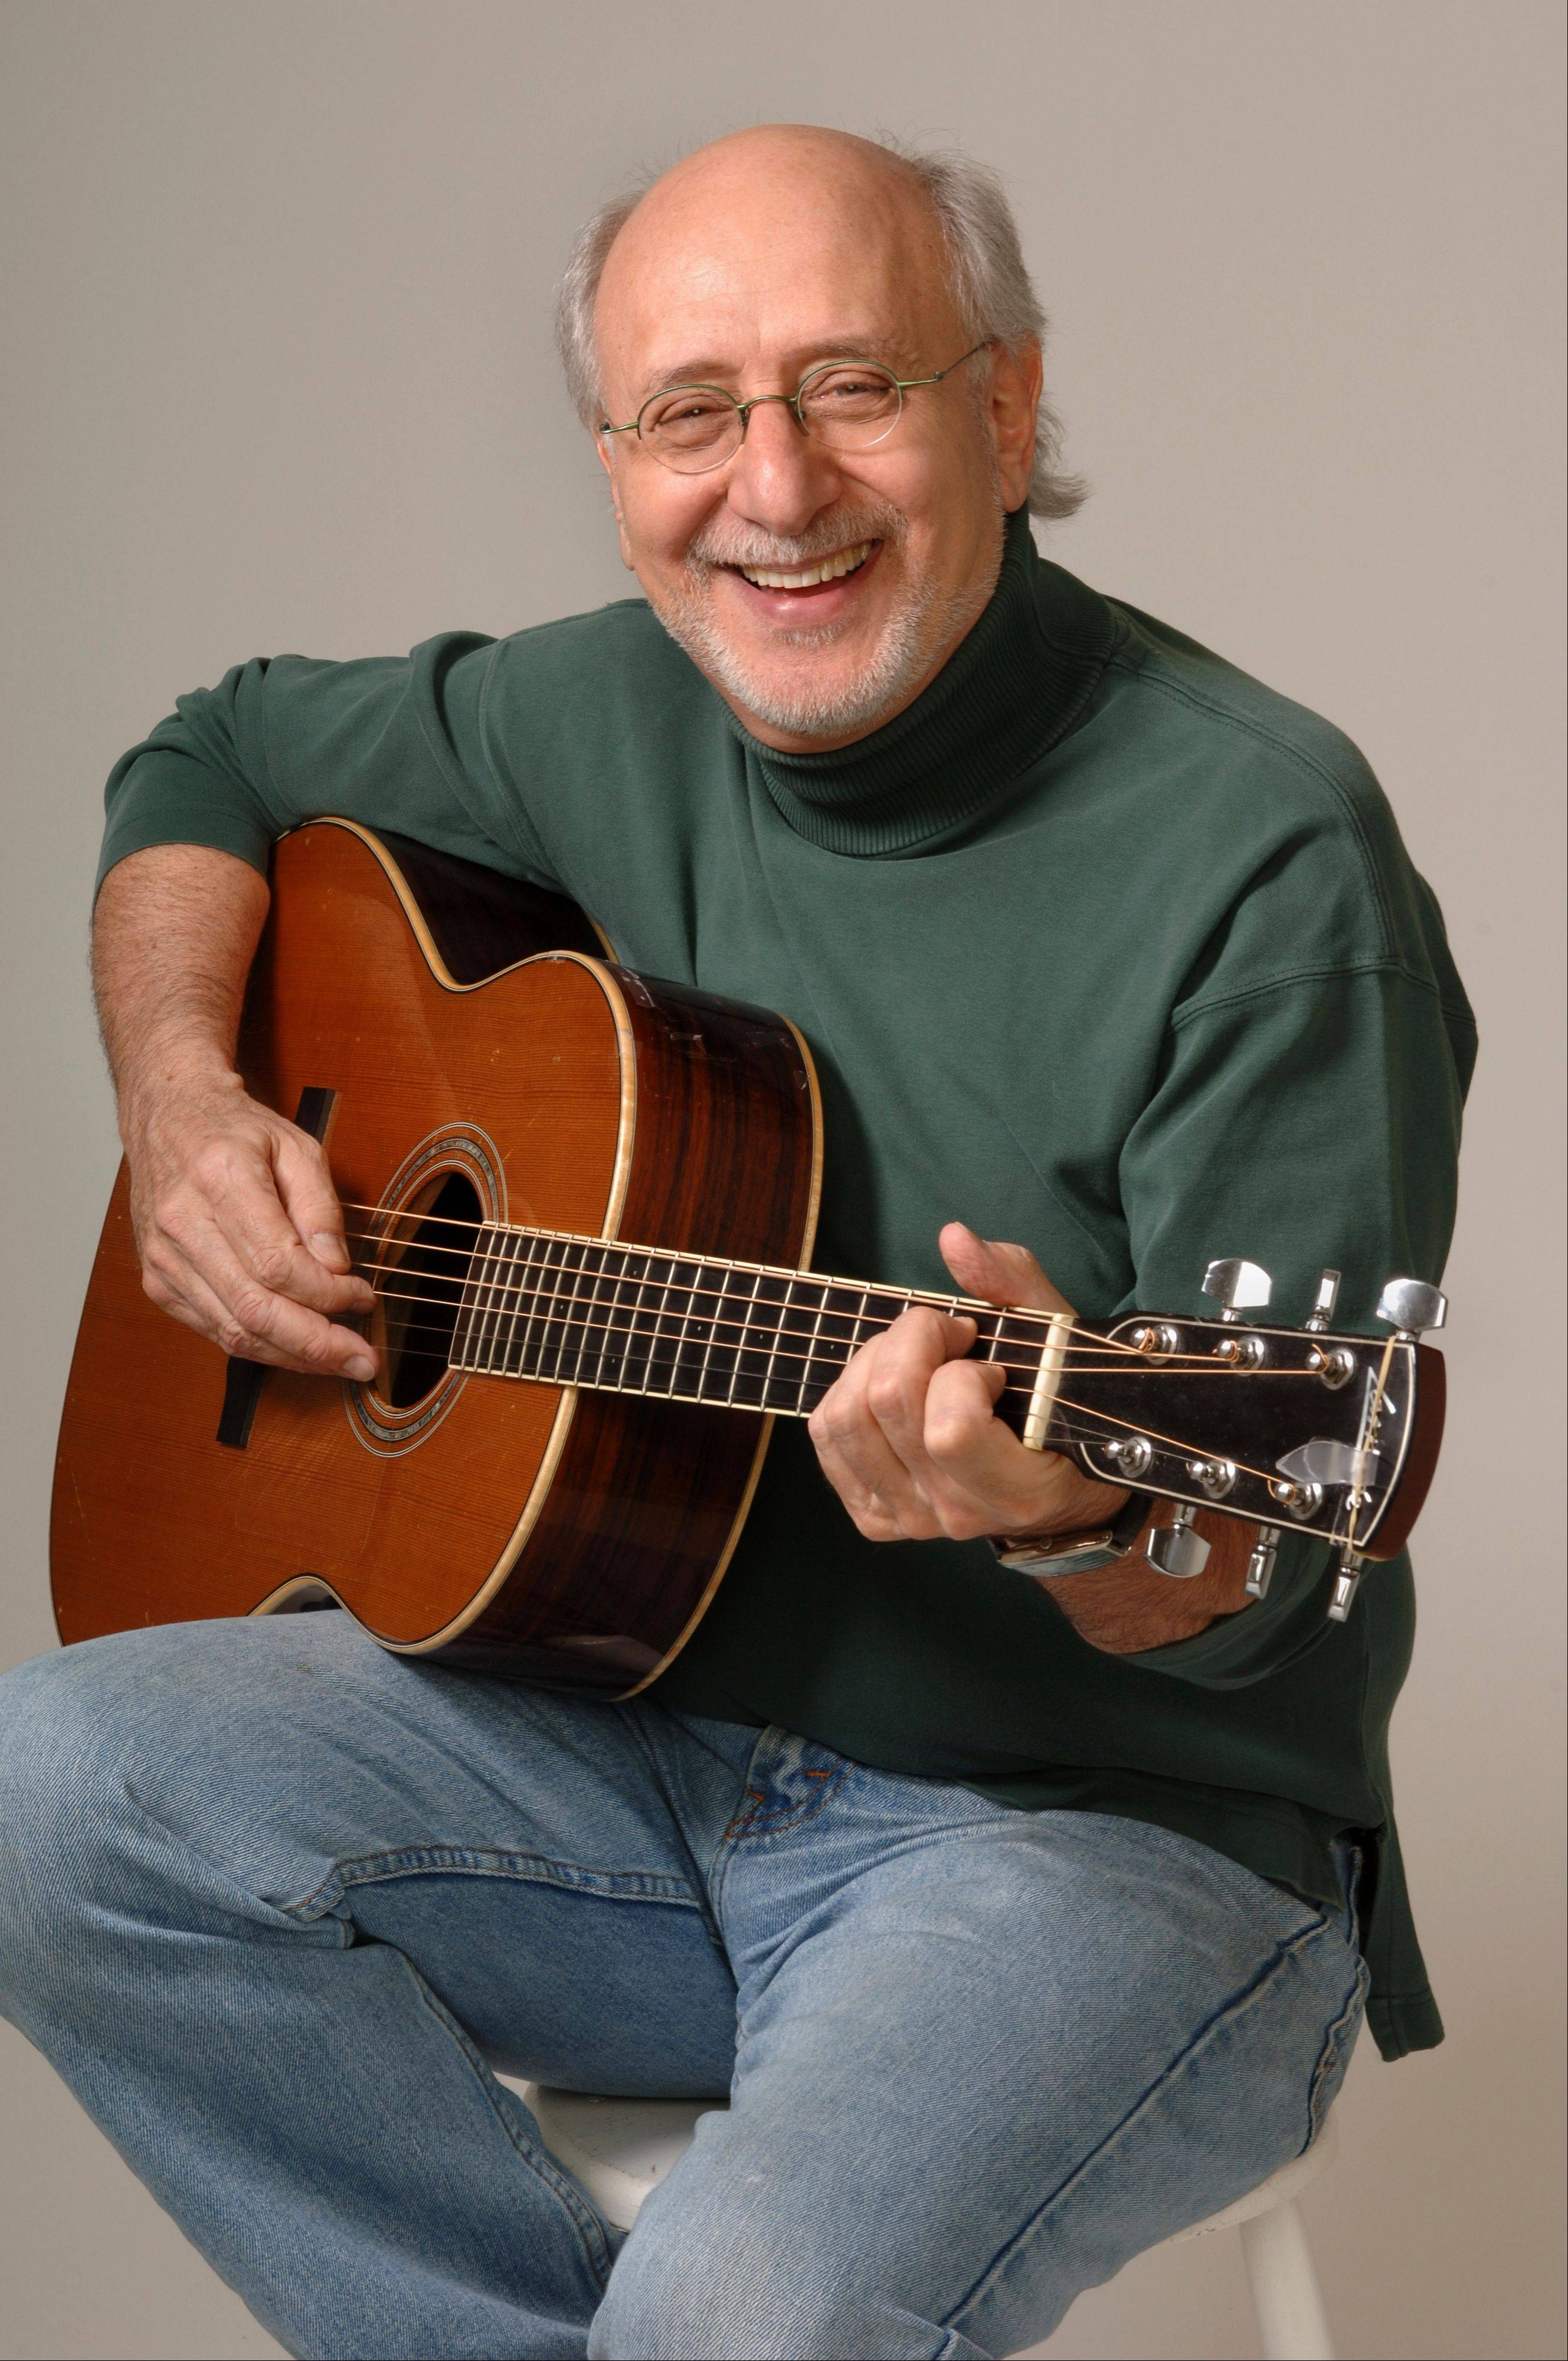 Peter Yarrow's concert at the Raue Center for the Arts in Crystal Lake has been rescheduled to 8 p.m. Saturday, July 27.